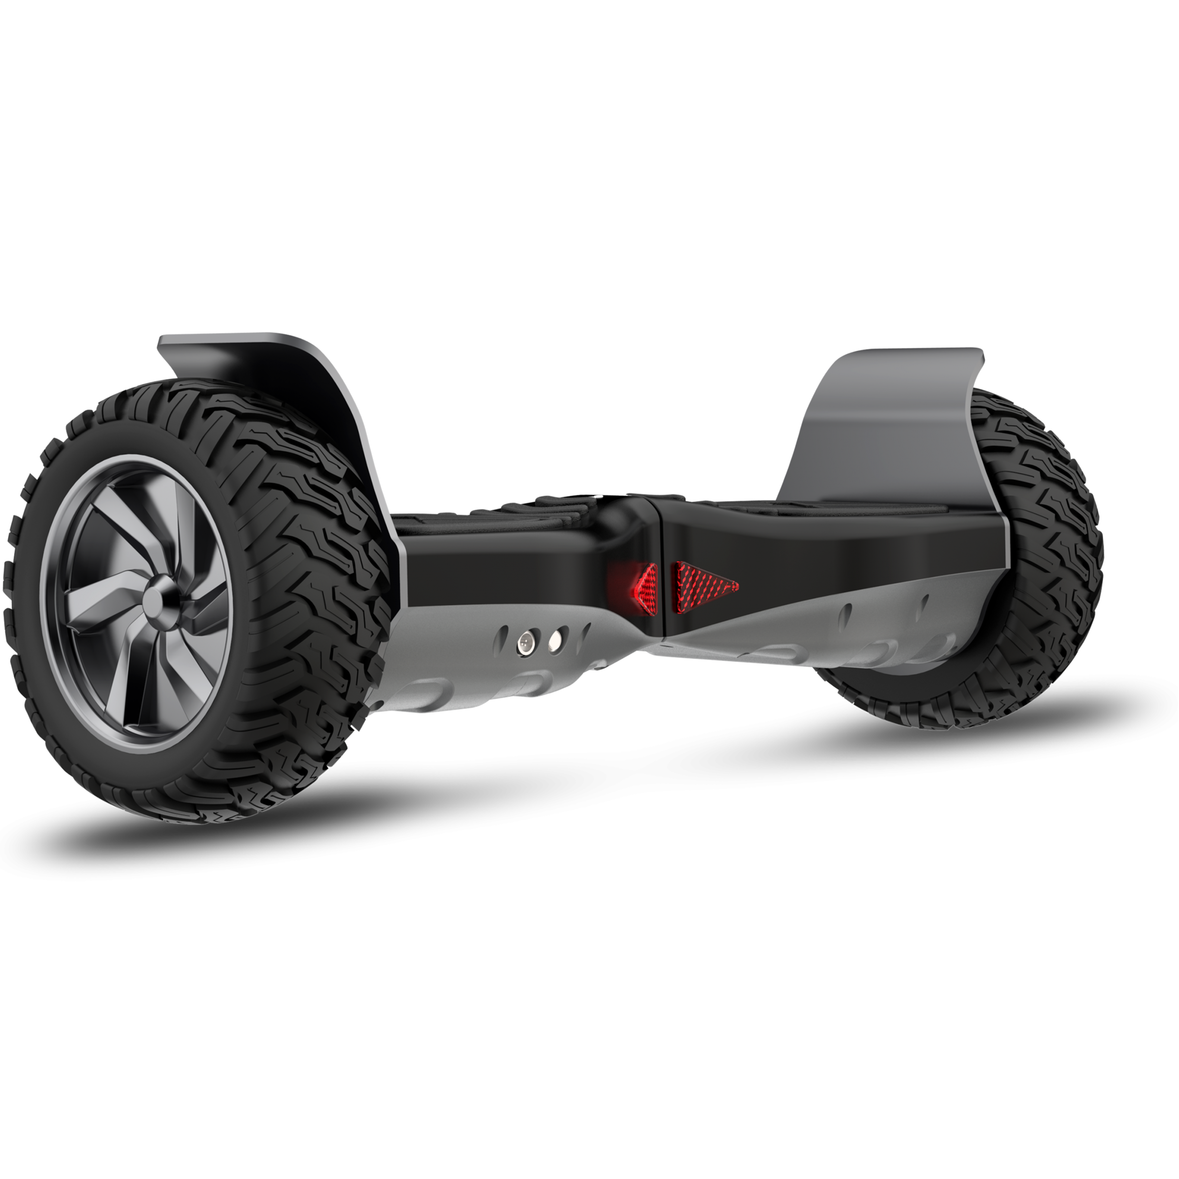 Kiwano KO,X All Terrain Scooter at Discounted Prices for